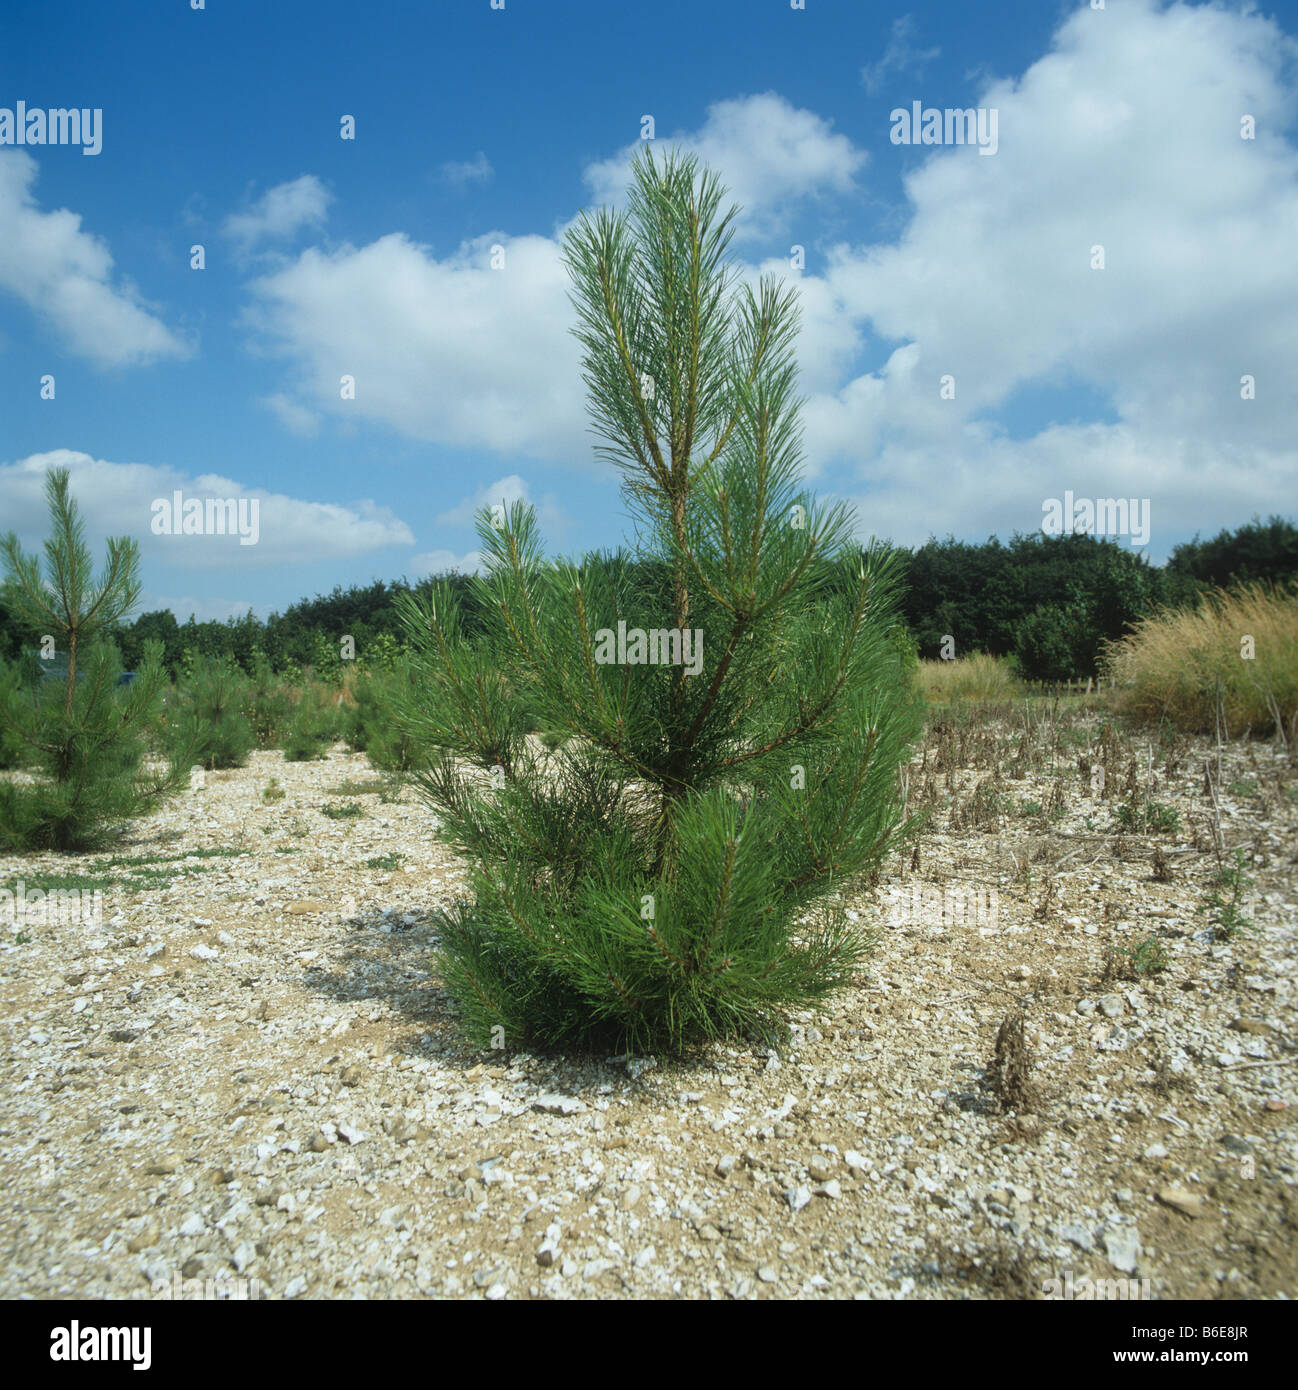 Young pine tree sapling reforestation experiment with weed control Hampshire - Stock Image